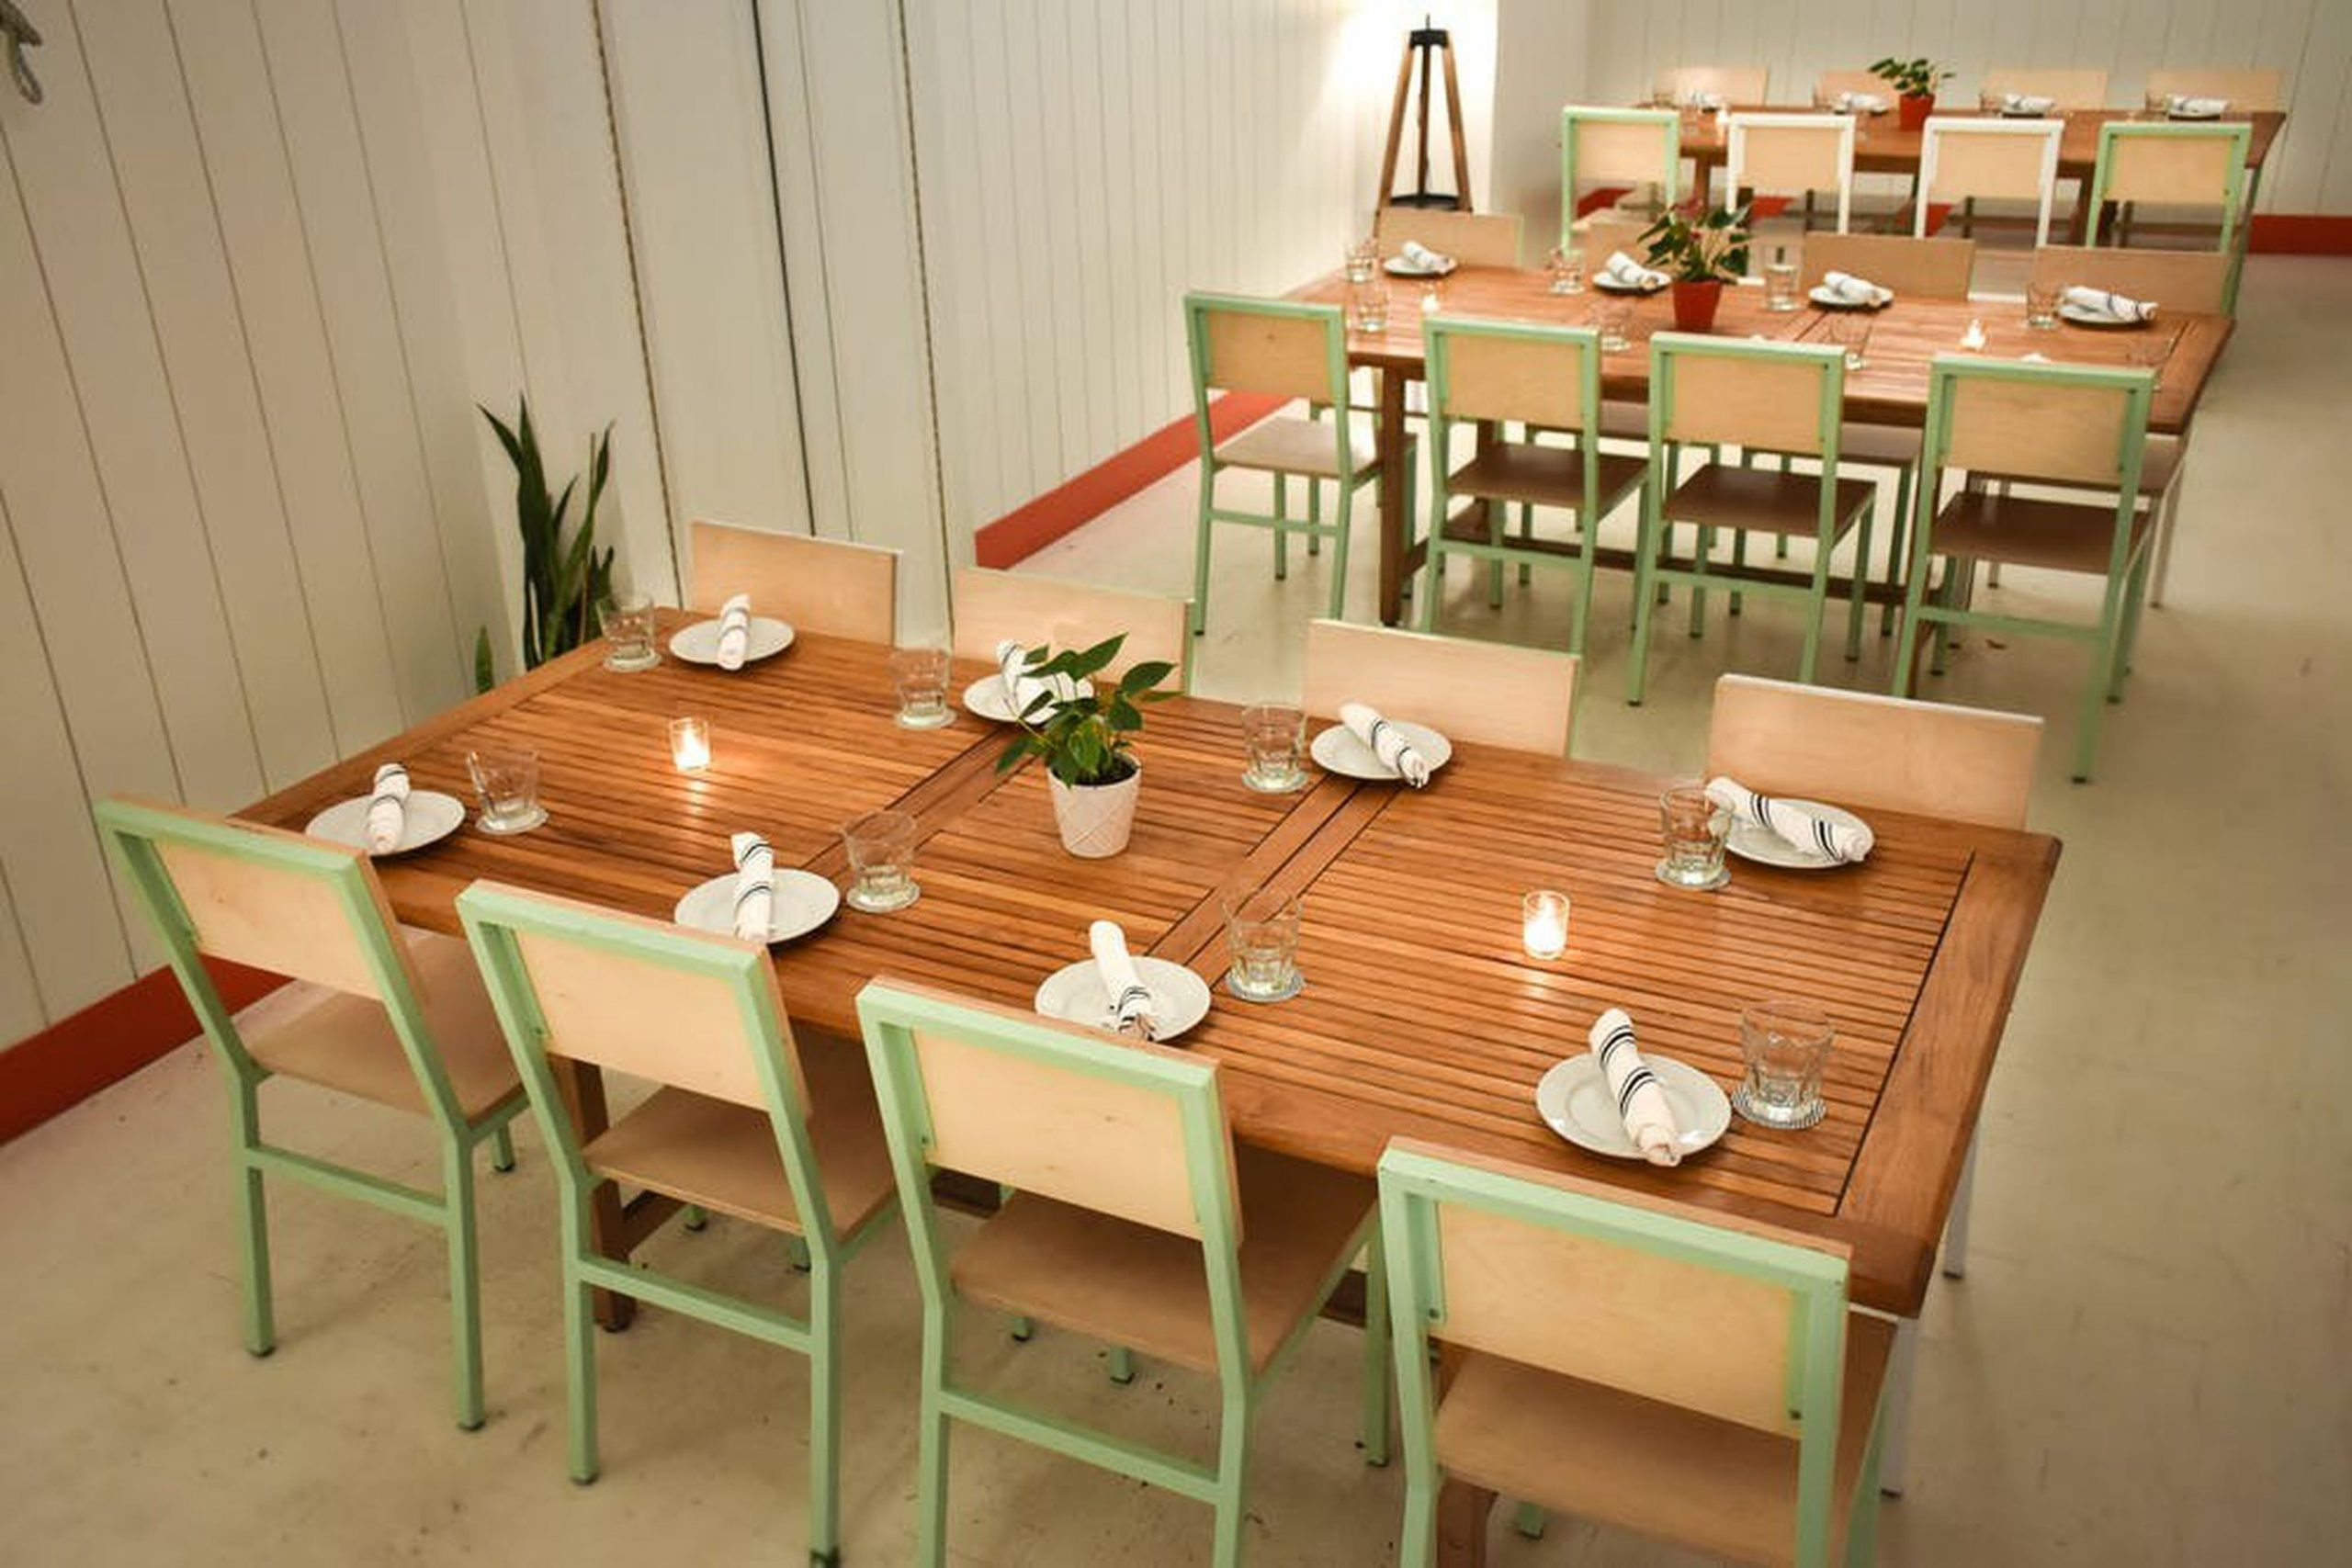 Three brown tables with green accented chairs in a minimalist space